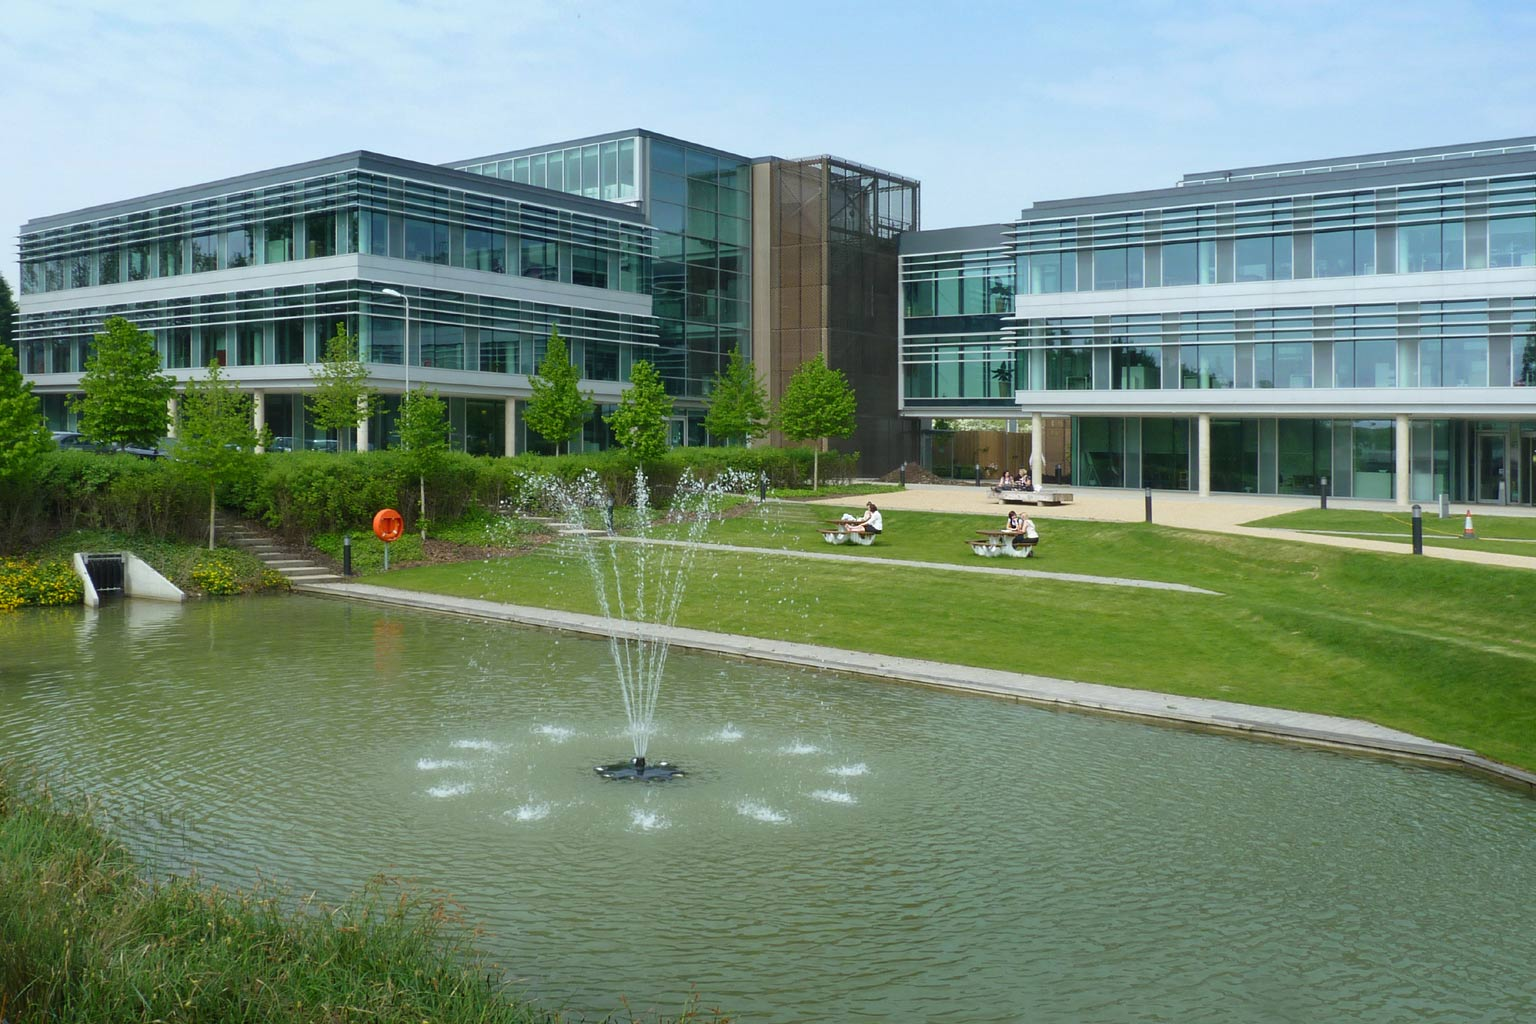 Plans for Cambridge Science Park Have Been Approved